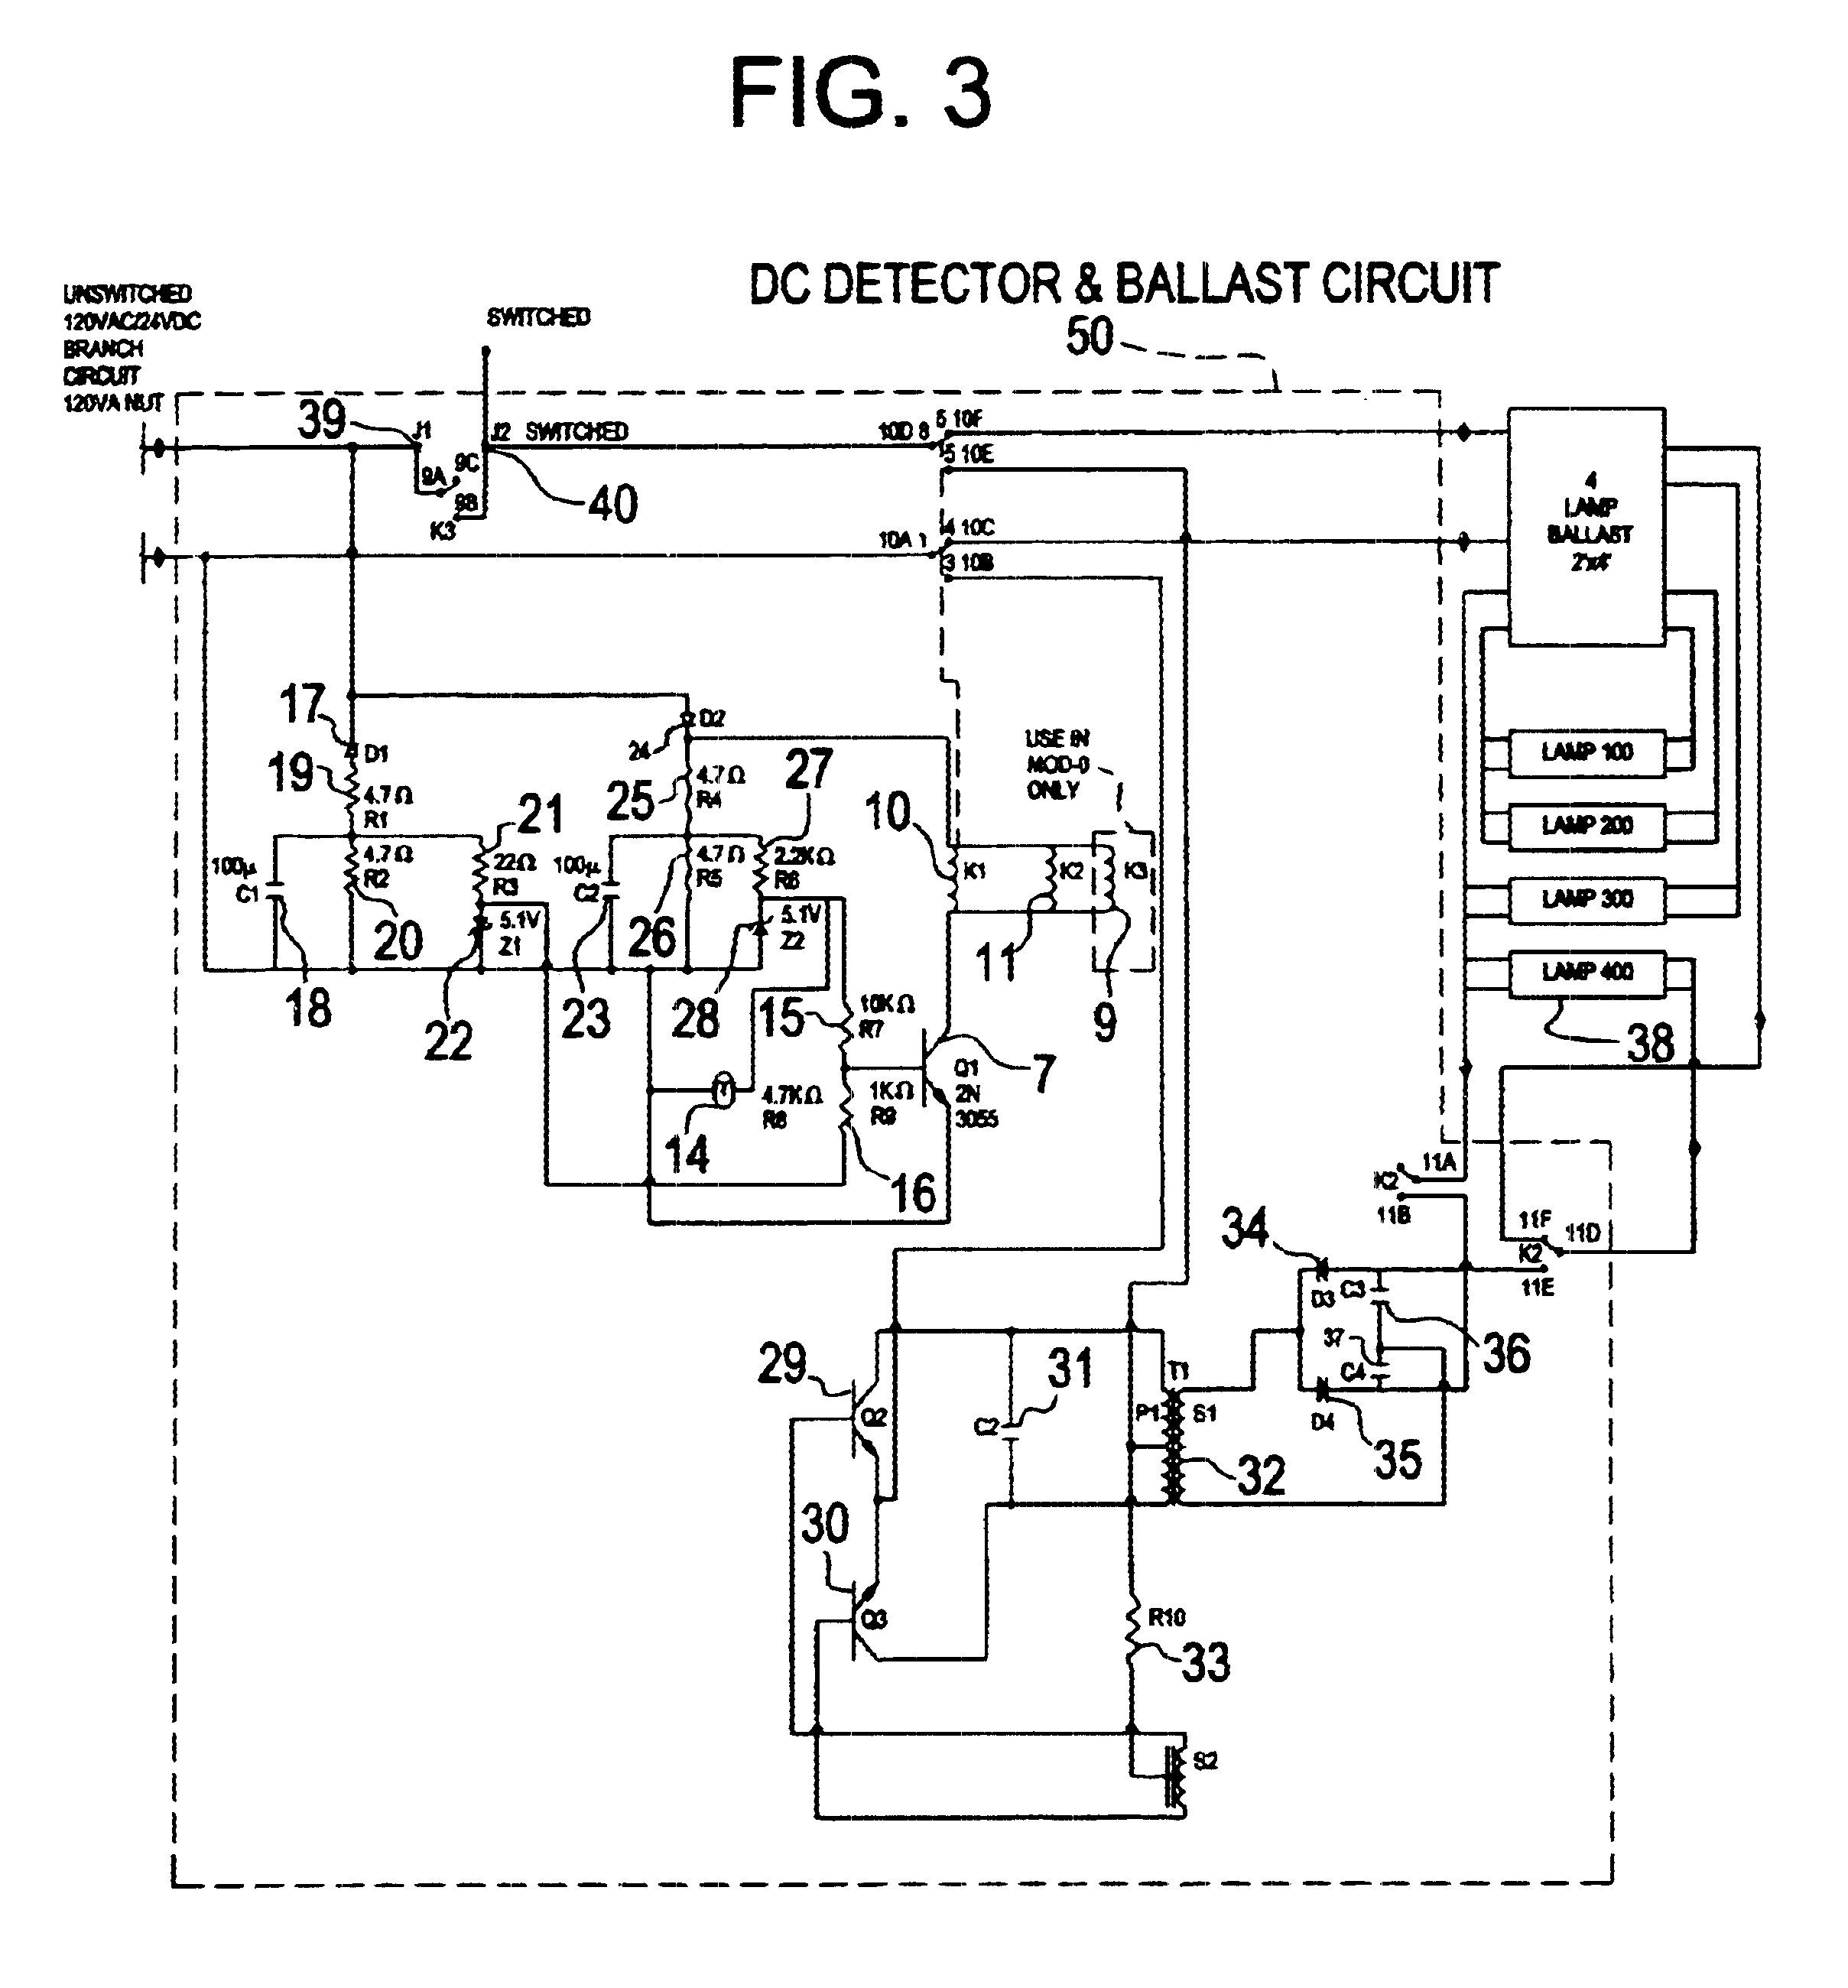 Power Sentry Emergency Ballast Wiring Diagram Collection on